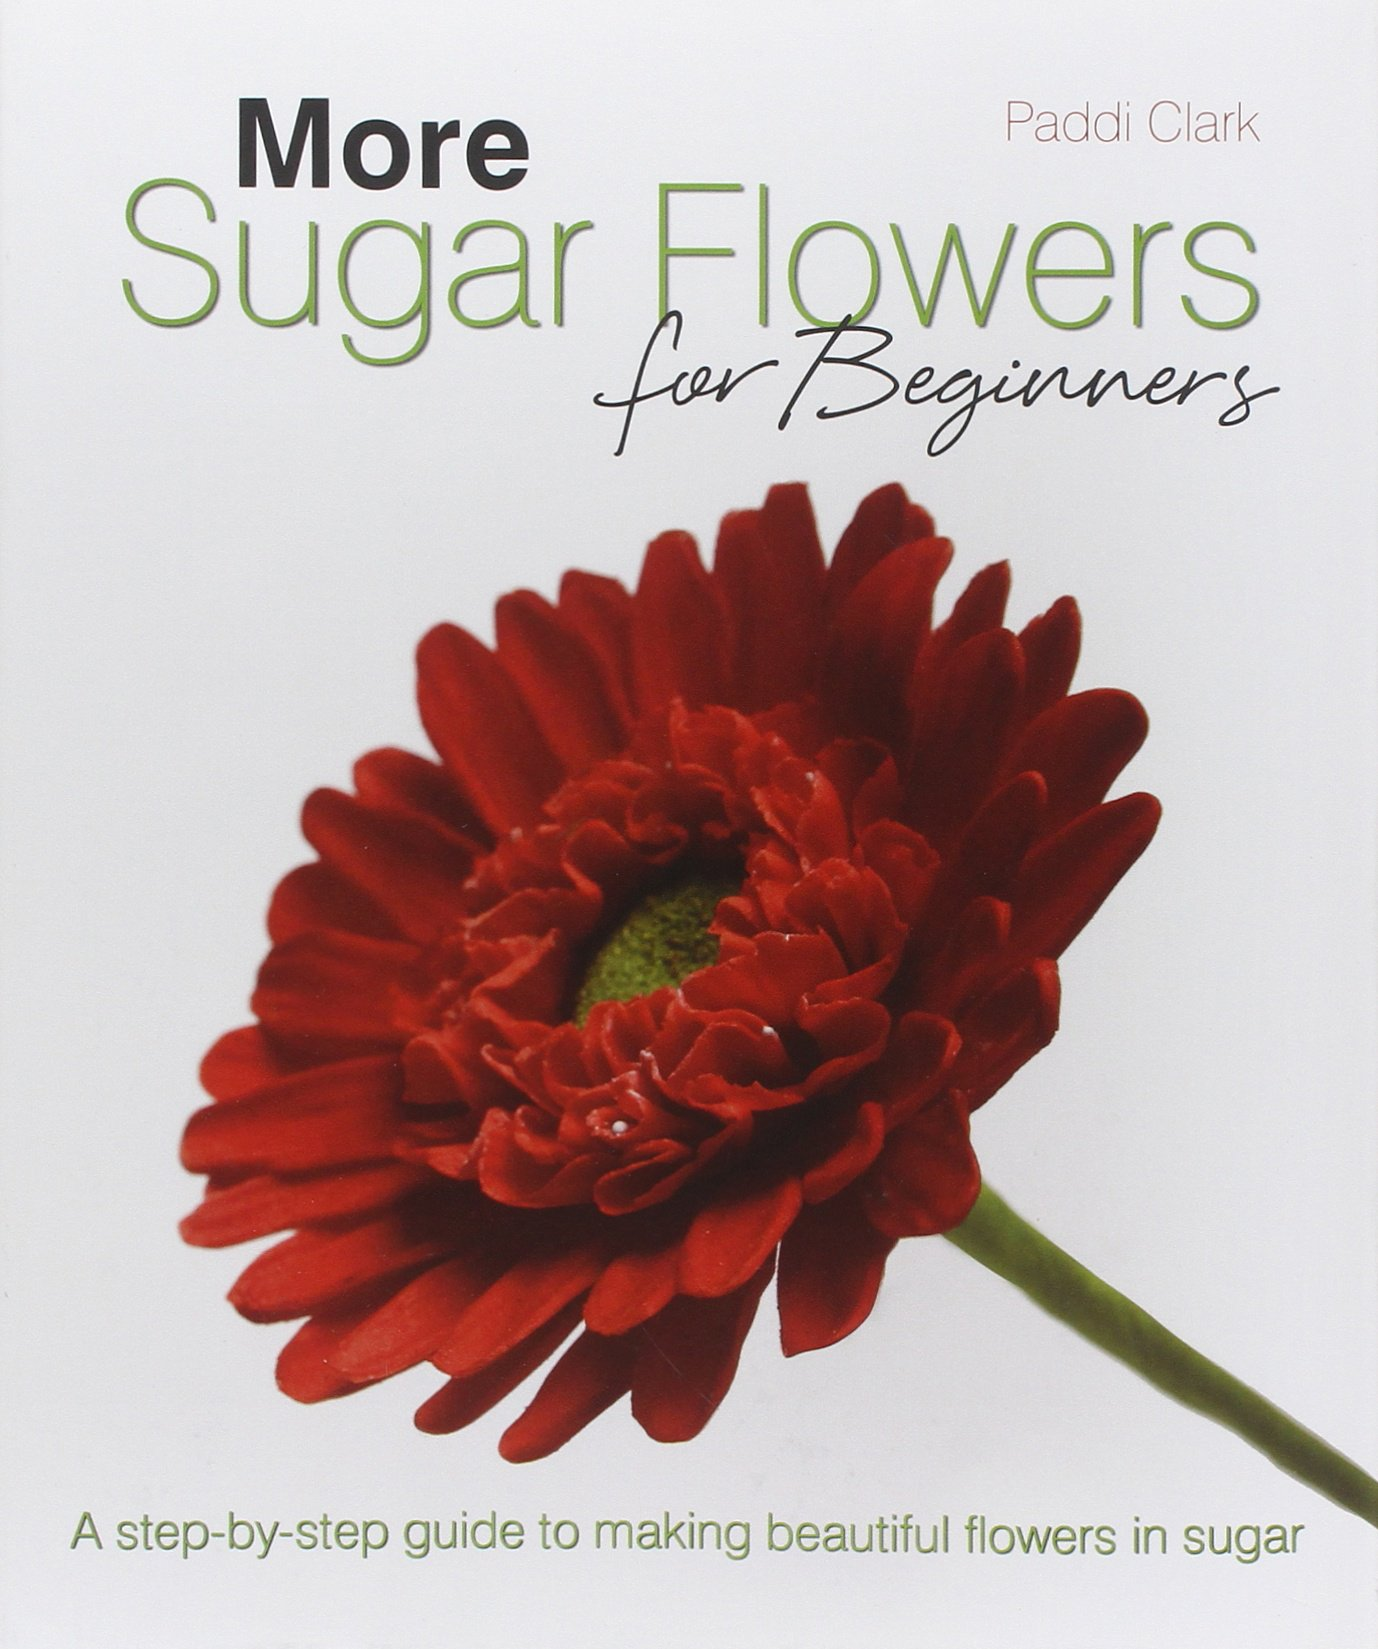 More sugar flowers for beginners a step by step guide to making more sugar flowers for beginners a step by step guide to making beautiful flowers in sugar paddi clark jenny stewart 9781905113262 amazon books izmirmasajfo